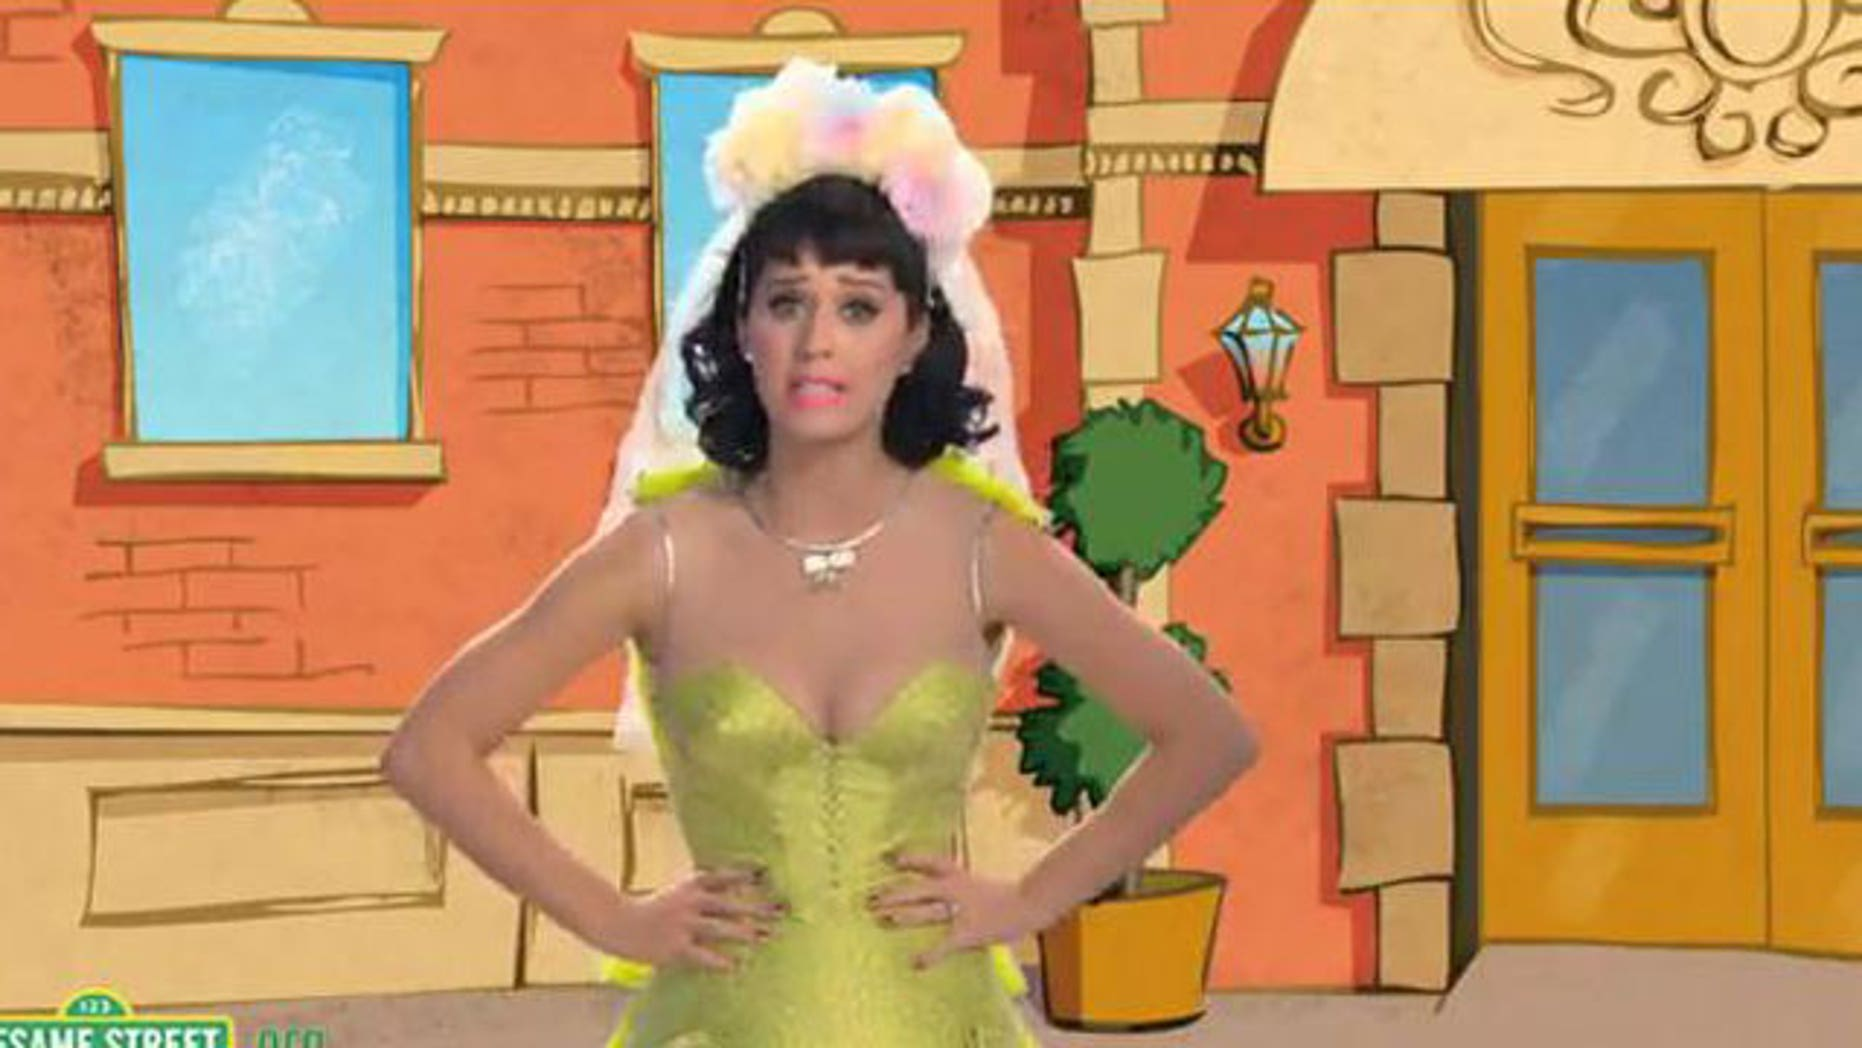 """Katy Perry's revealing clothing cost her an appearance on the family-friendly """"Sesame Street."""""""